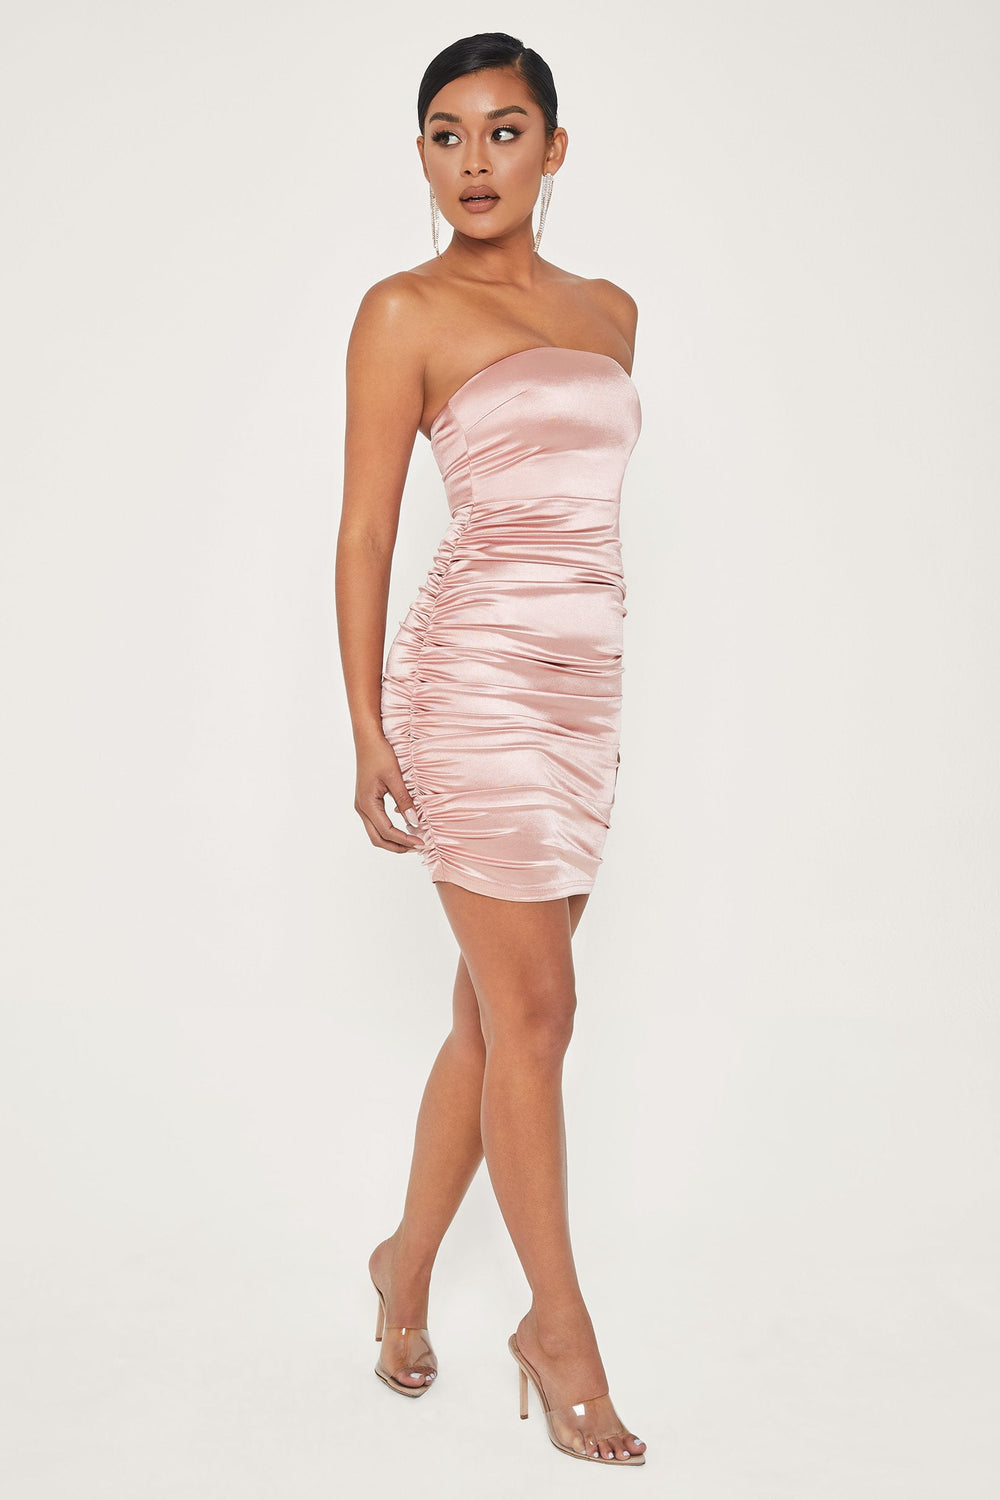 Bernadette Strapless Ruched Side Dress - Pink - MESHKI ?id=13584876404811